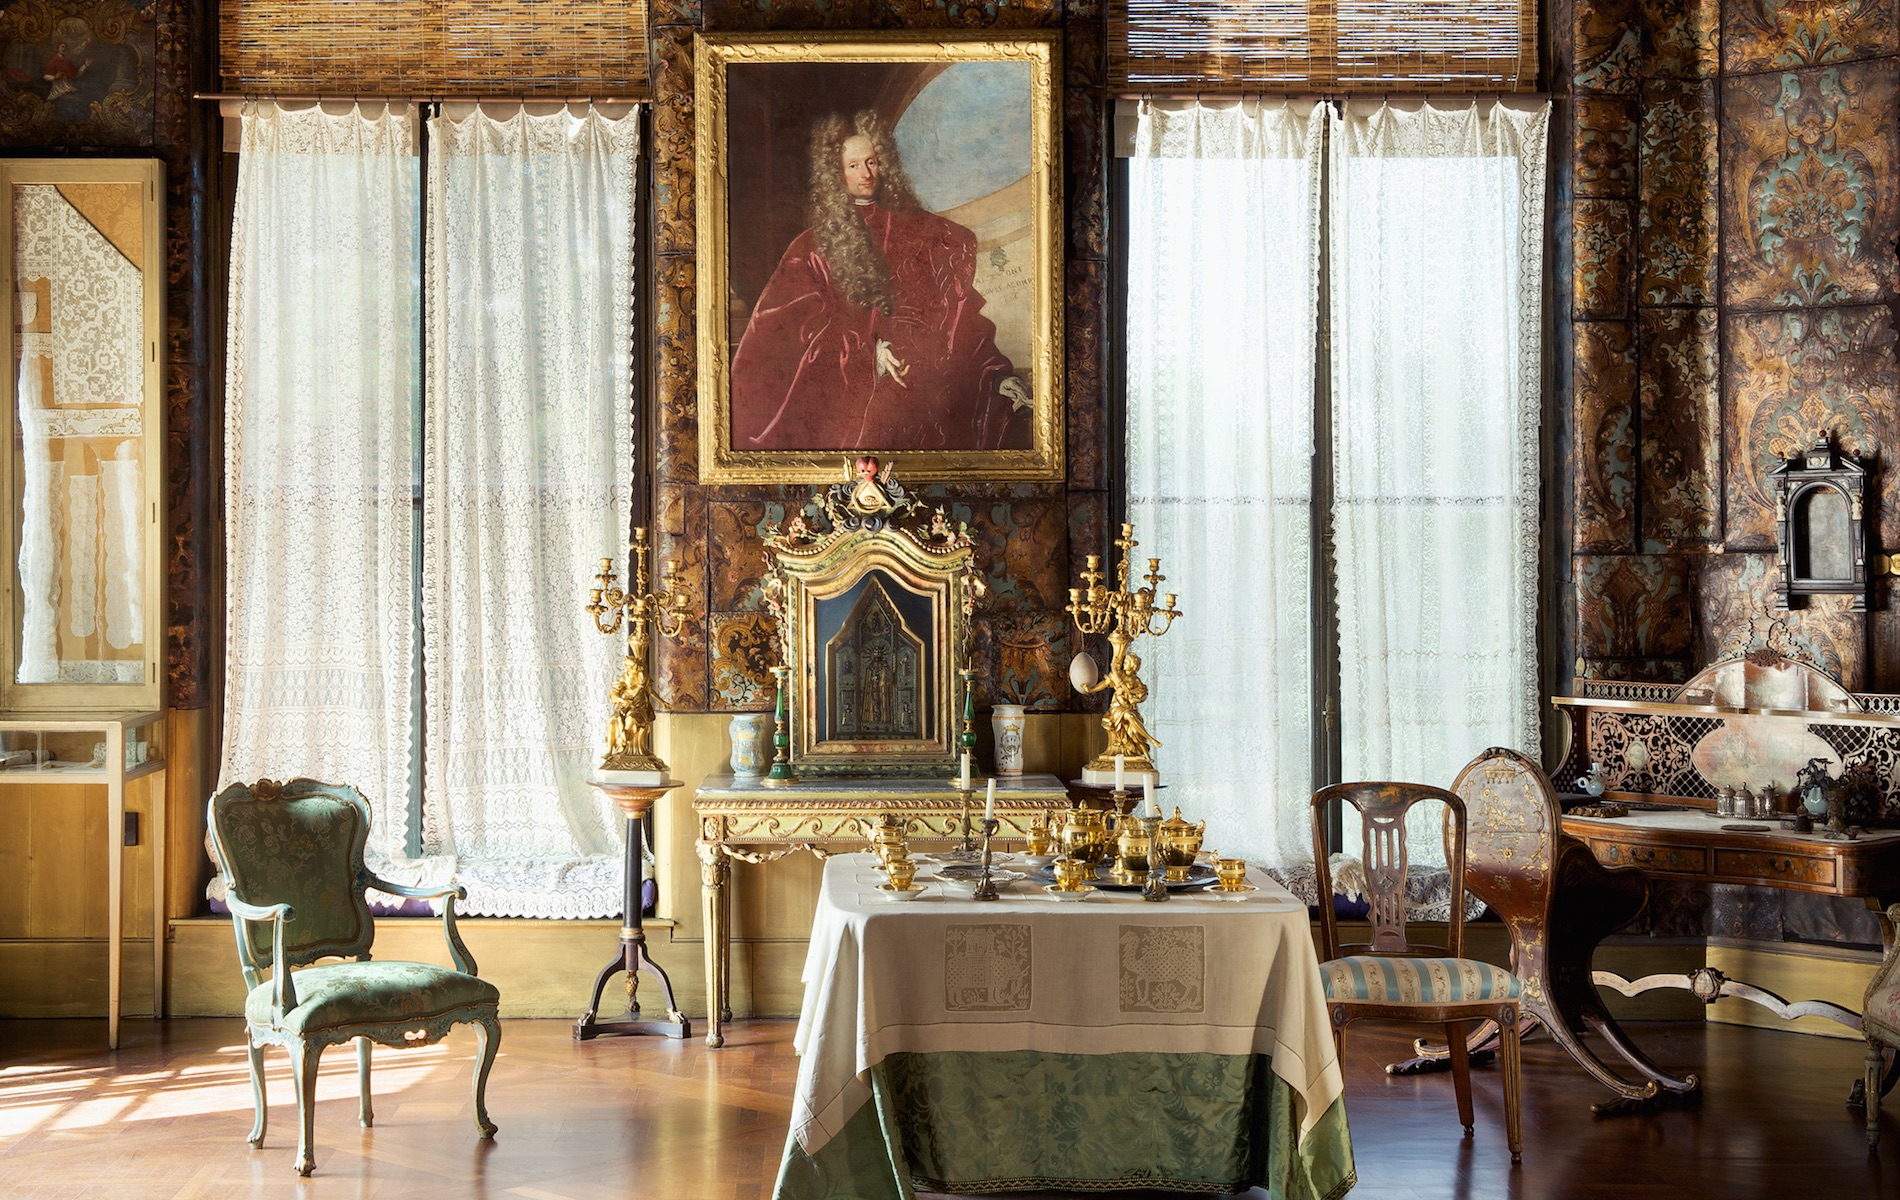 old fashioned room with table with white and green linen and a giant waiting of a man in a red cloak